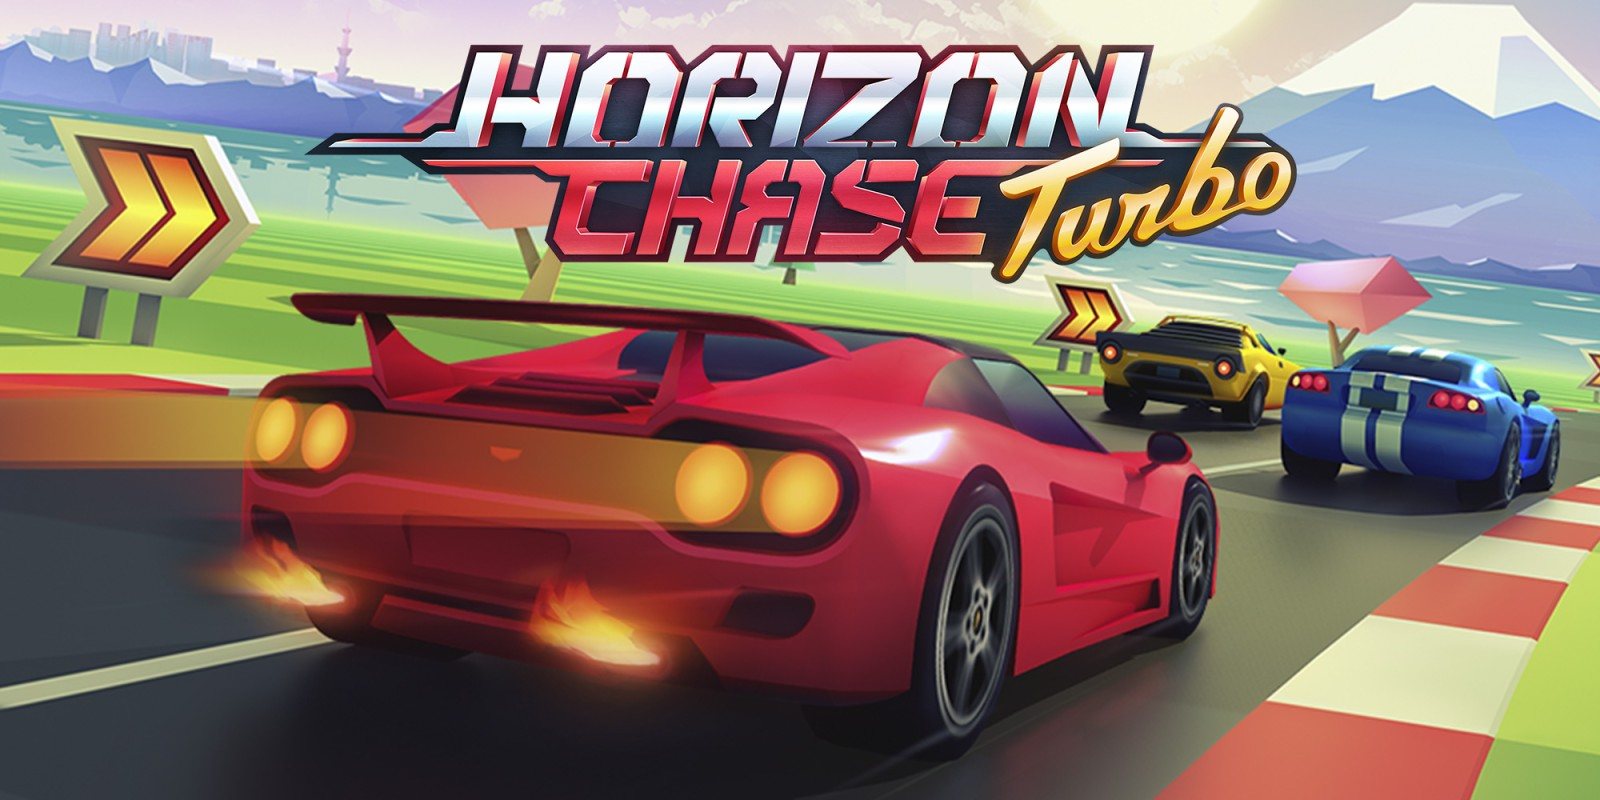 Horizon Chase Turbo | Nintendo Switch download software